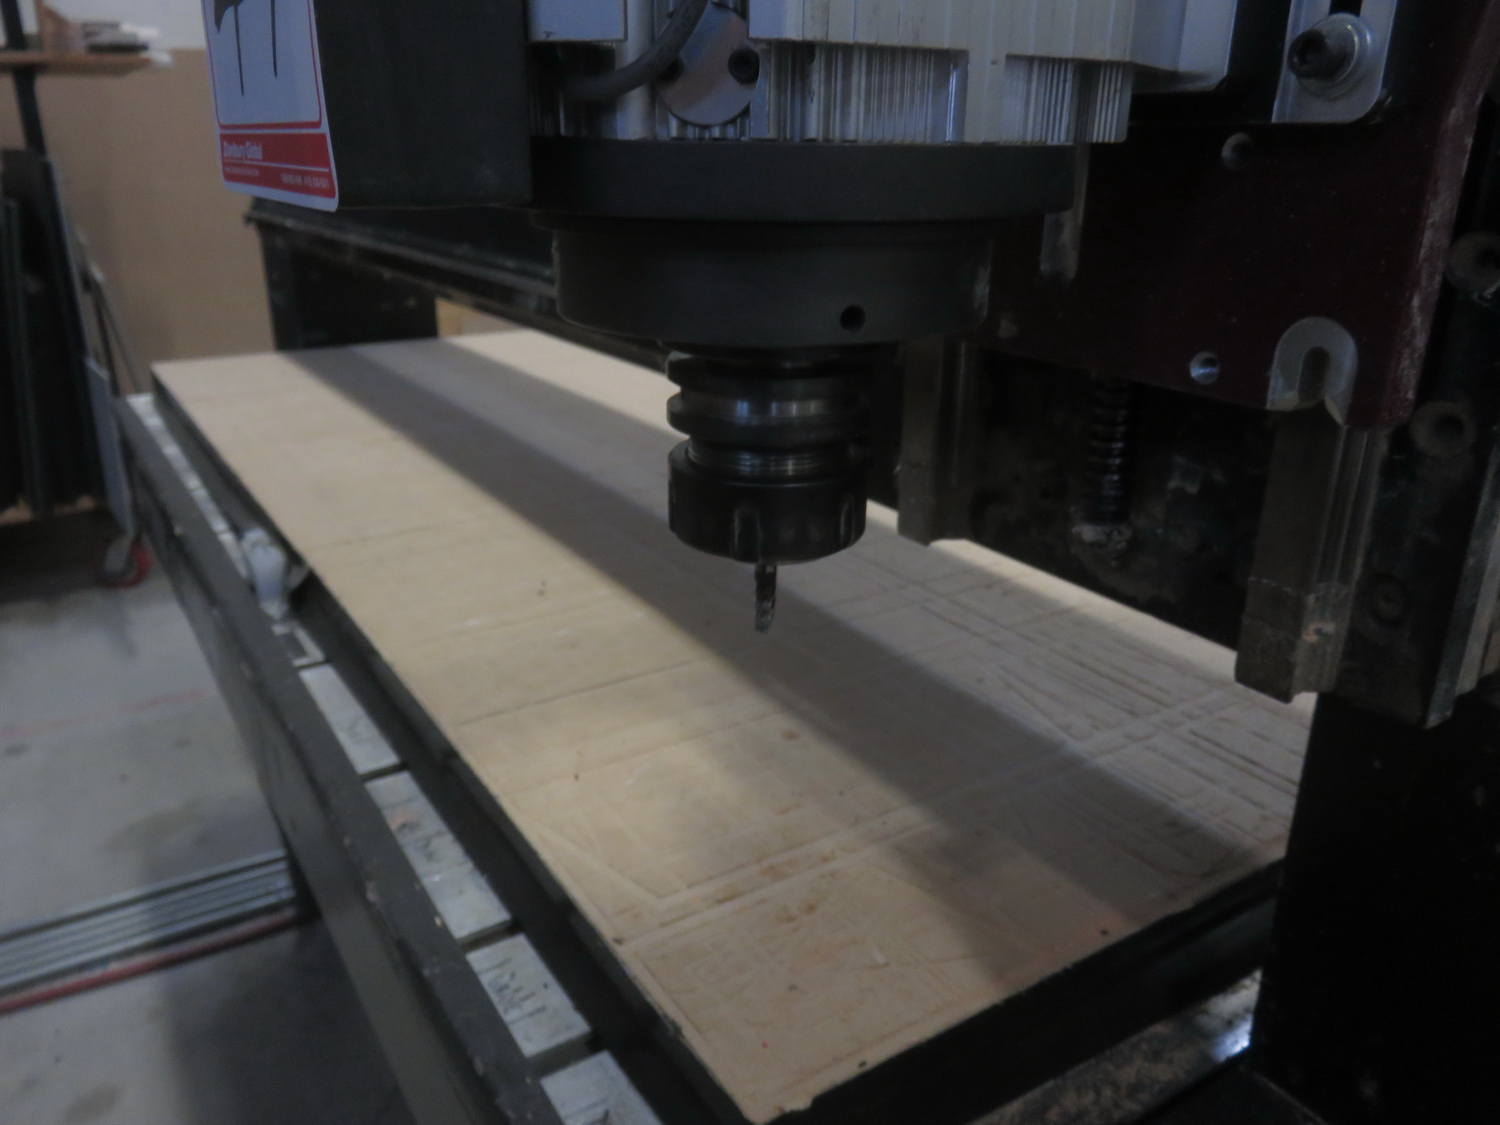 """AXYZ MODEL 4004 CNC ROUTER W/ 2004 BECKER VTLF 250 SK VACUUM PUMP, ES915 ROUTER & 72"""" X 60"""" TABLE - Image 5 of 8"""